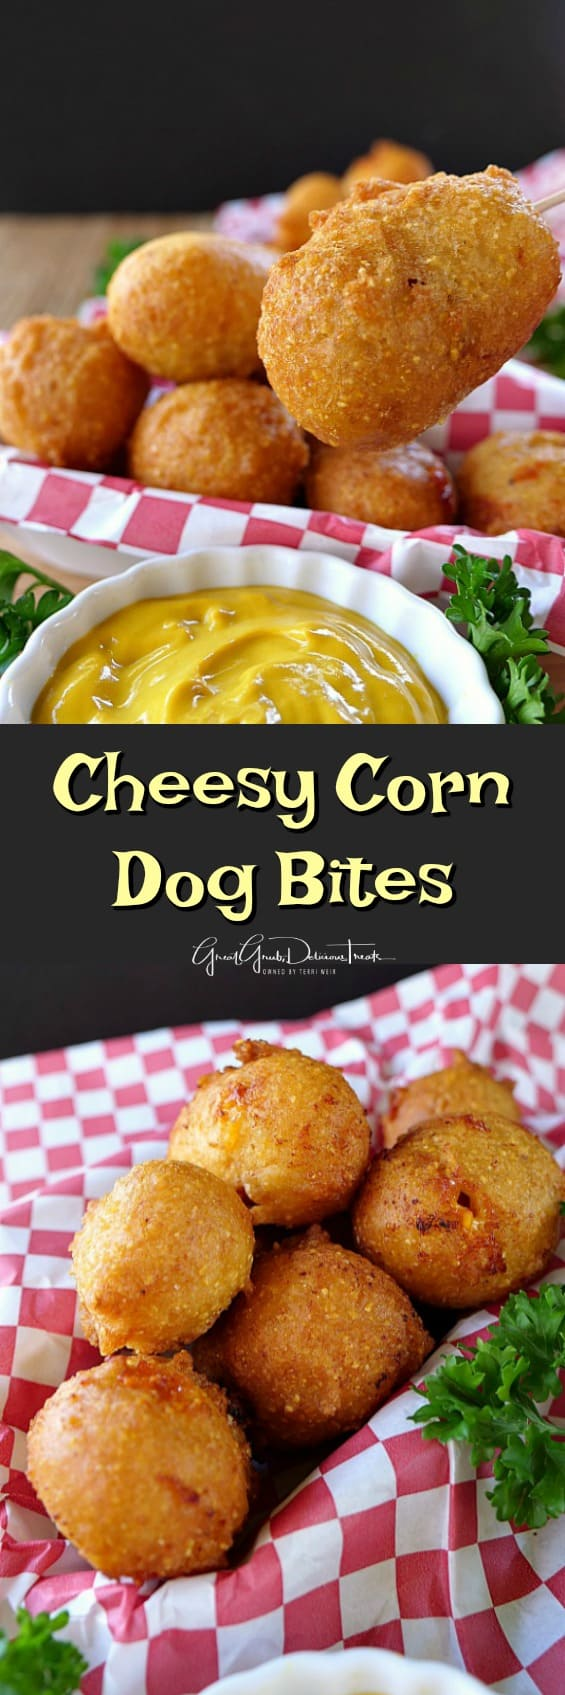 Cheesy Corn Dog Bites